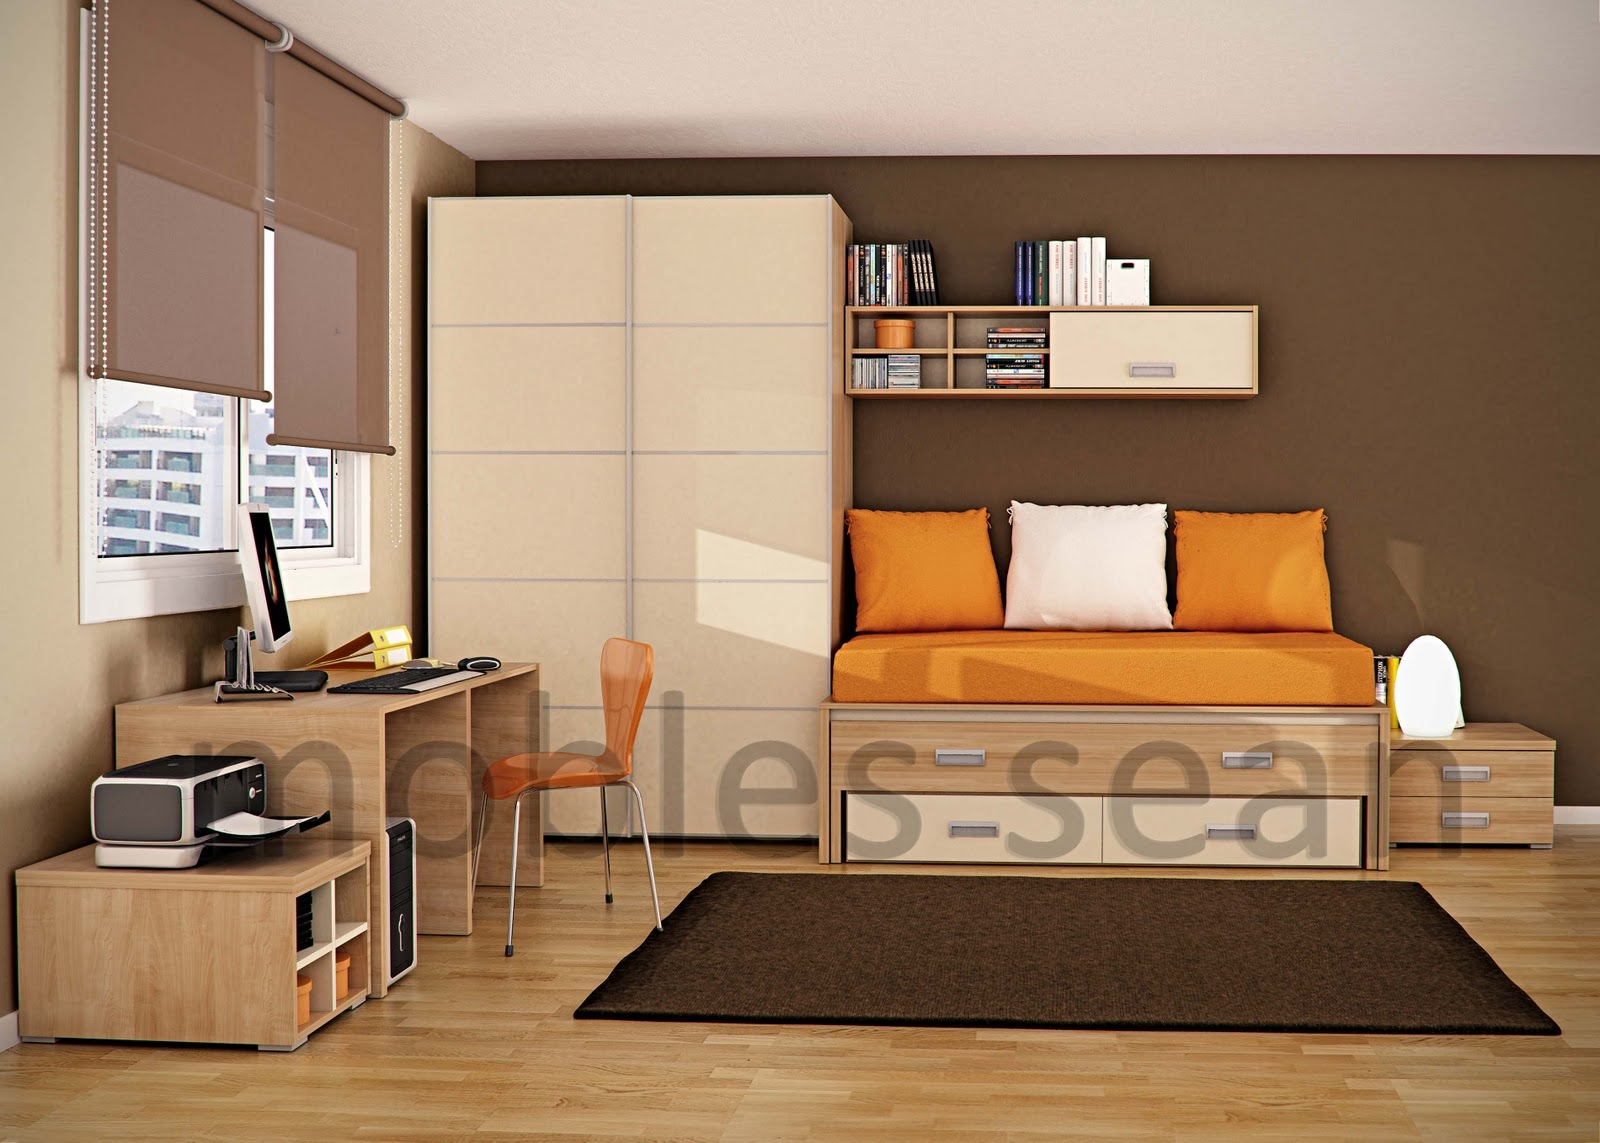 brown and orange bedroom ideas home design e saving designs for small kids rooms - Orange And Brown Bedroom Ideas